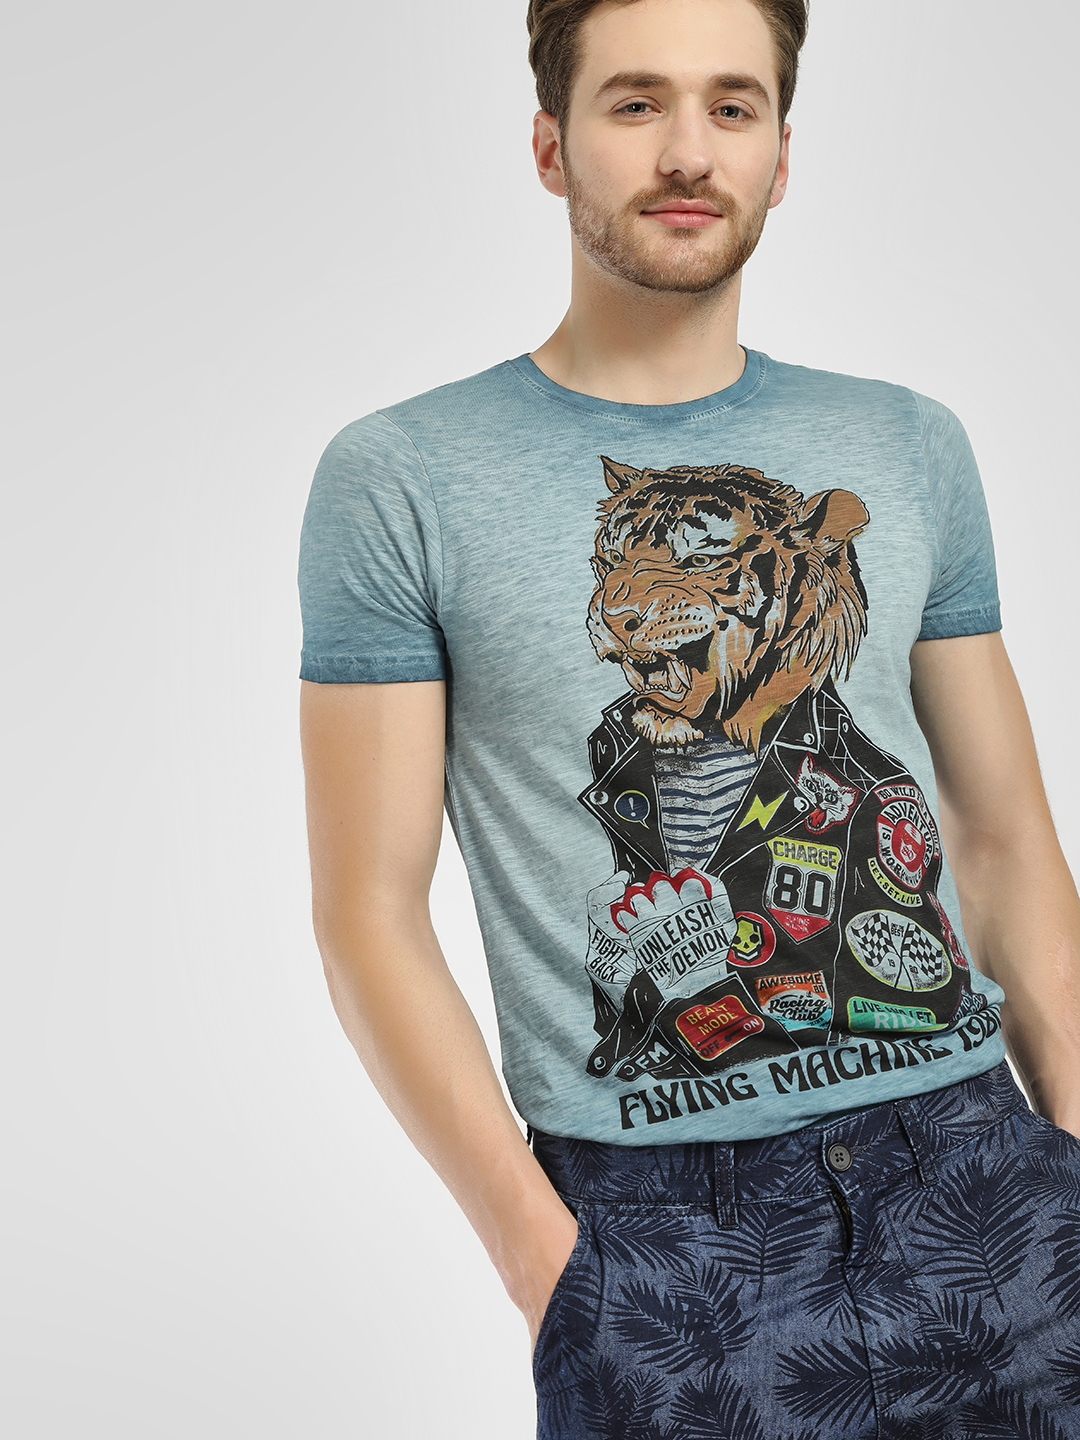 Flying Machine Ombre Racing Tiger Print T-Shirt